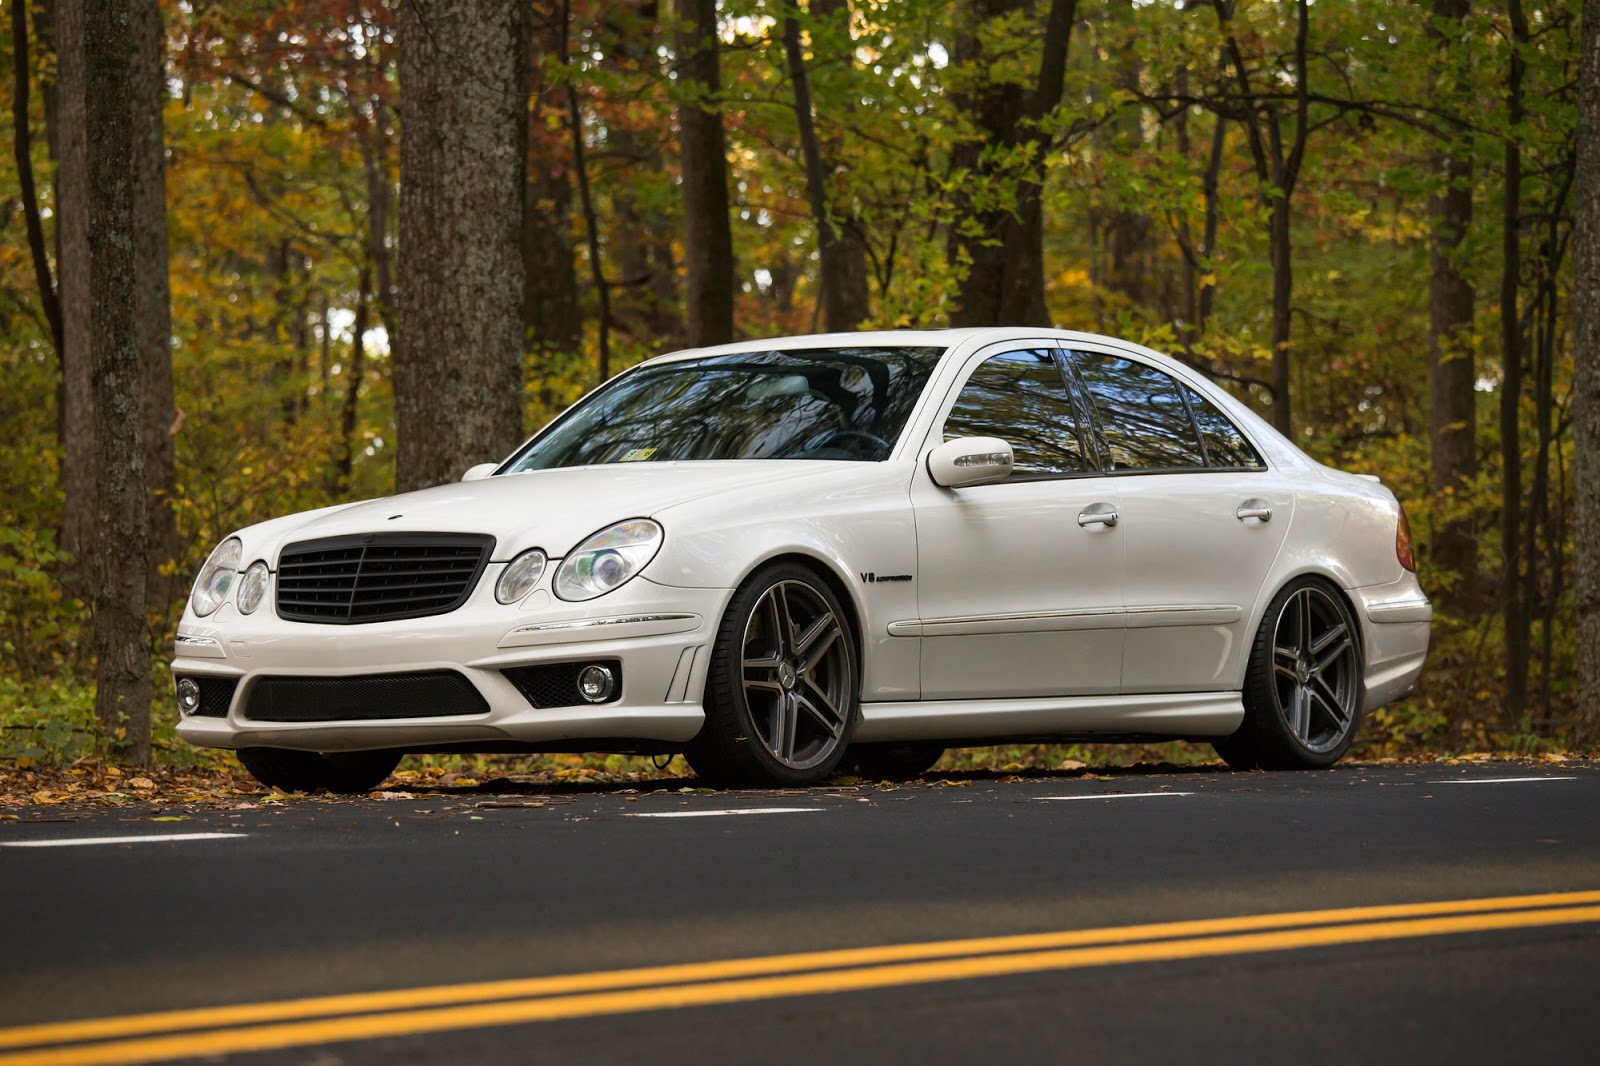 Mercedes Benz W211 E55 Amg On R19 Sport Edition St6 Wheels